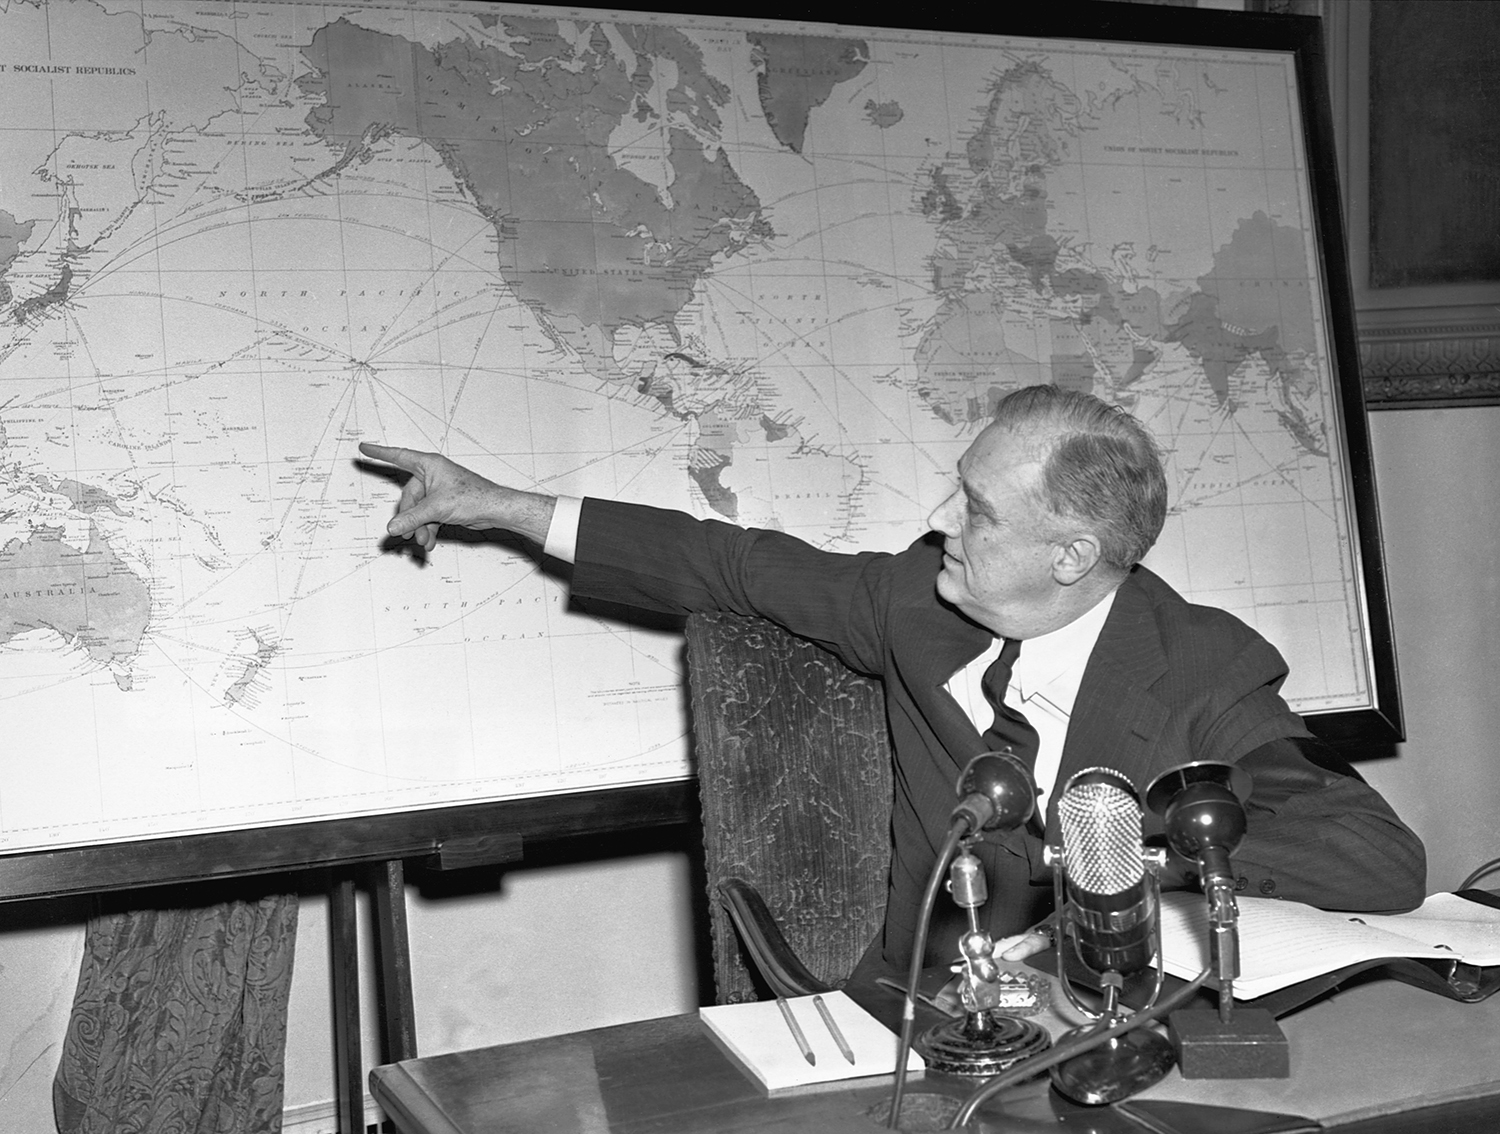 roosevelt foreign policy gettyimages 514700306.jpg